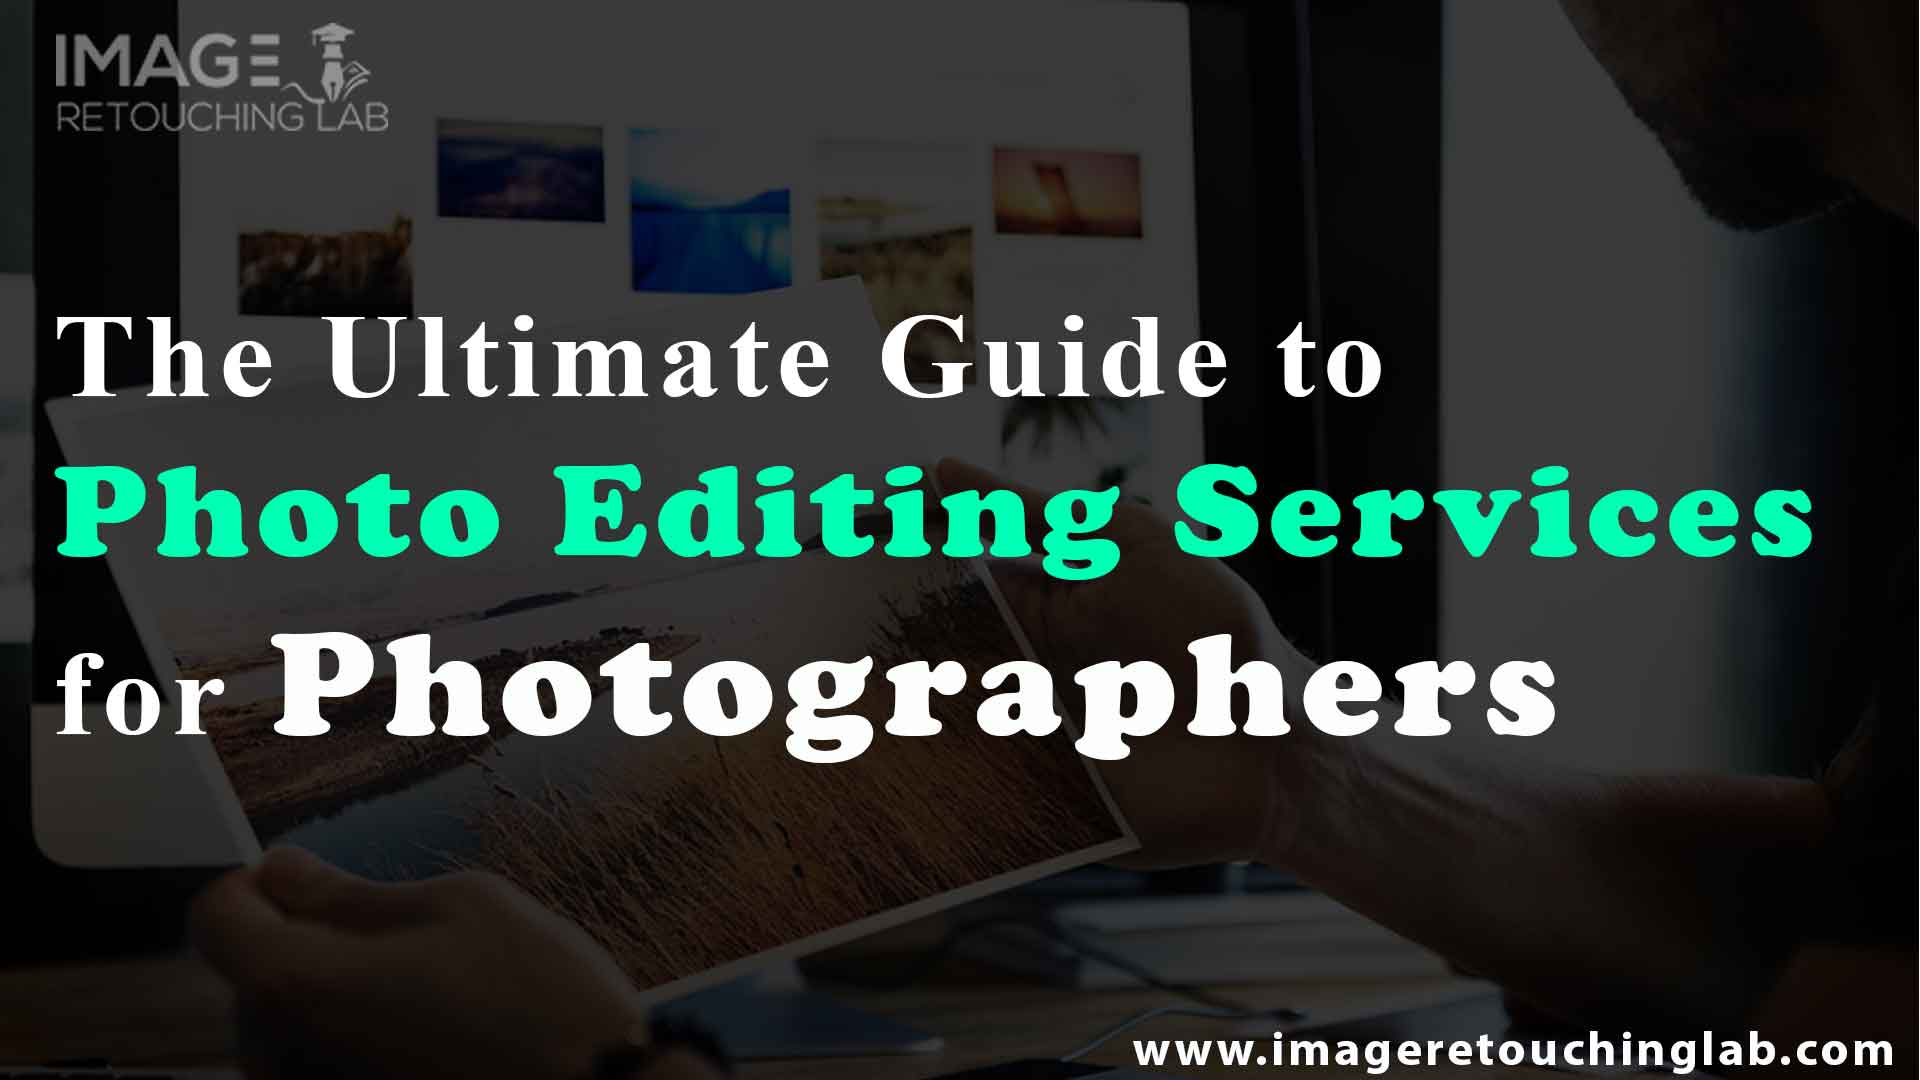 The Ultimate Guide to Photo Editing Services for Photographers (Info-graphics)